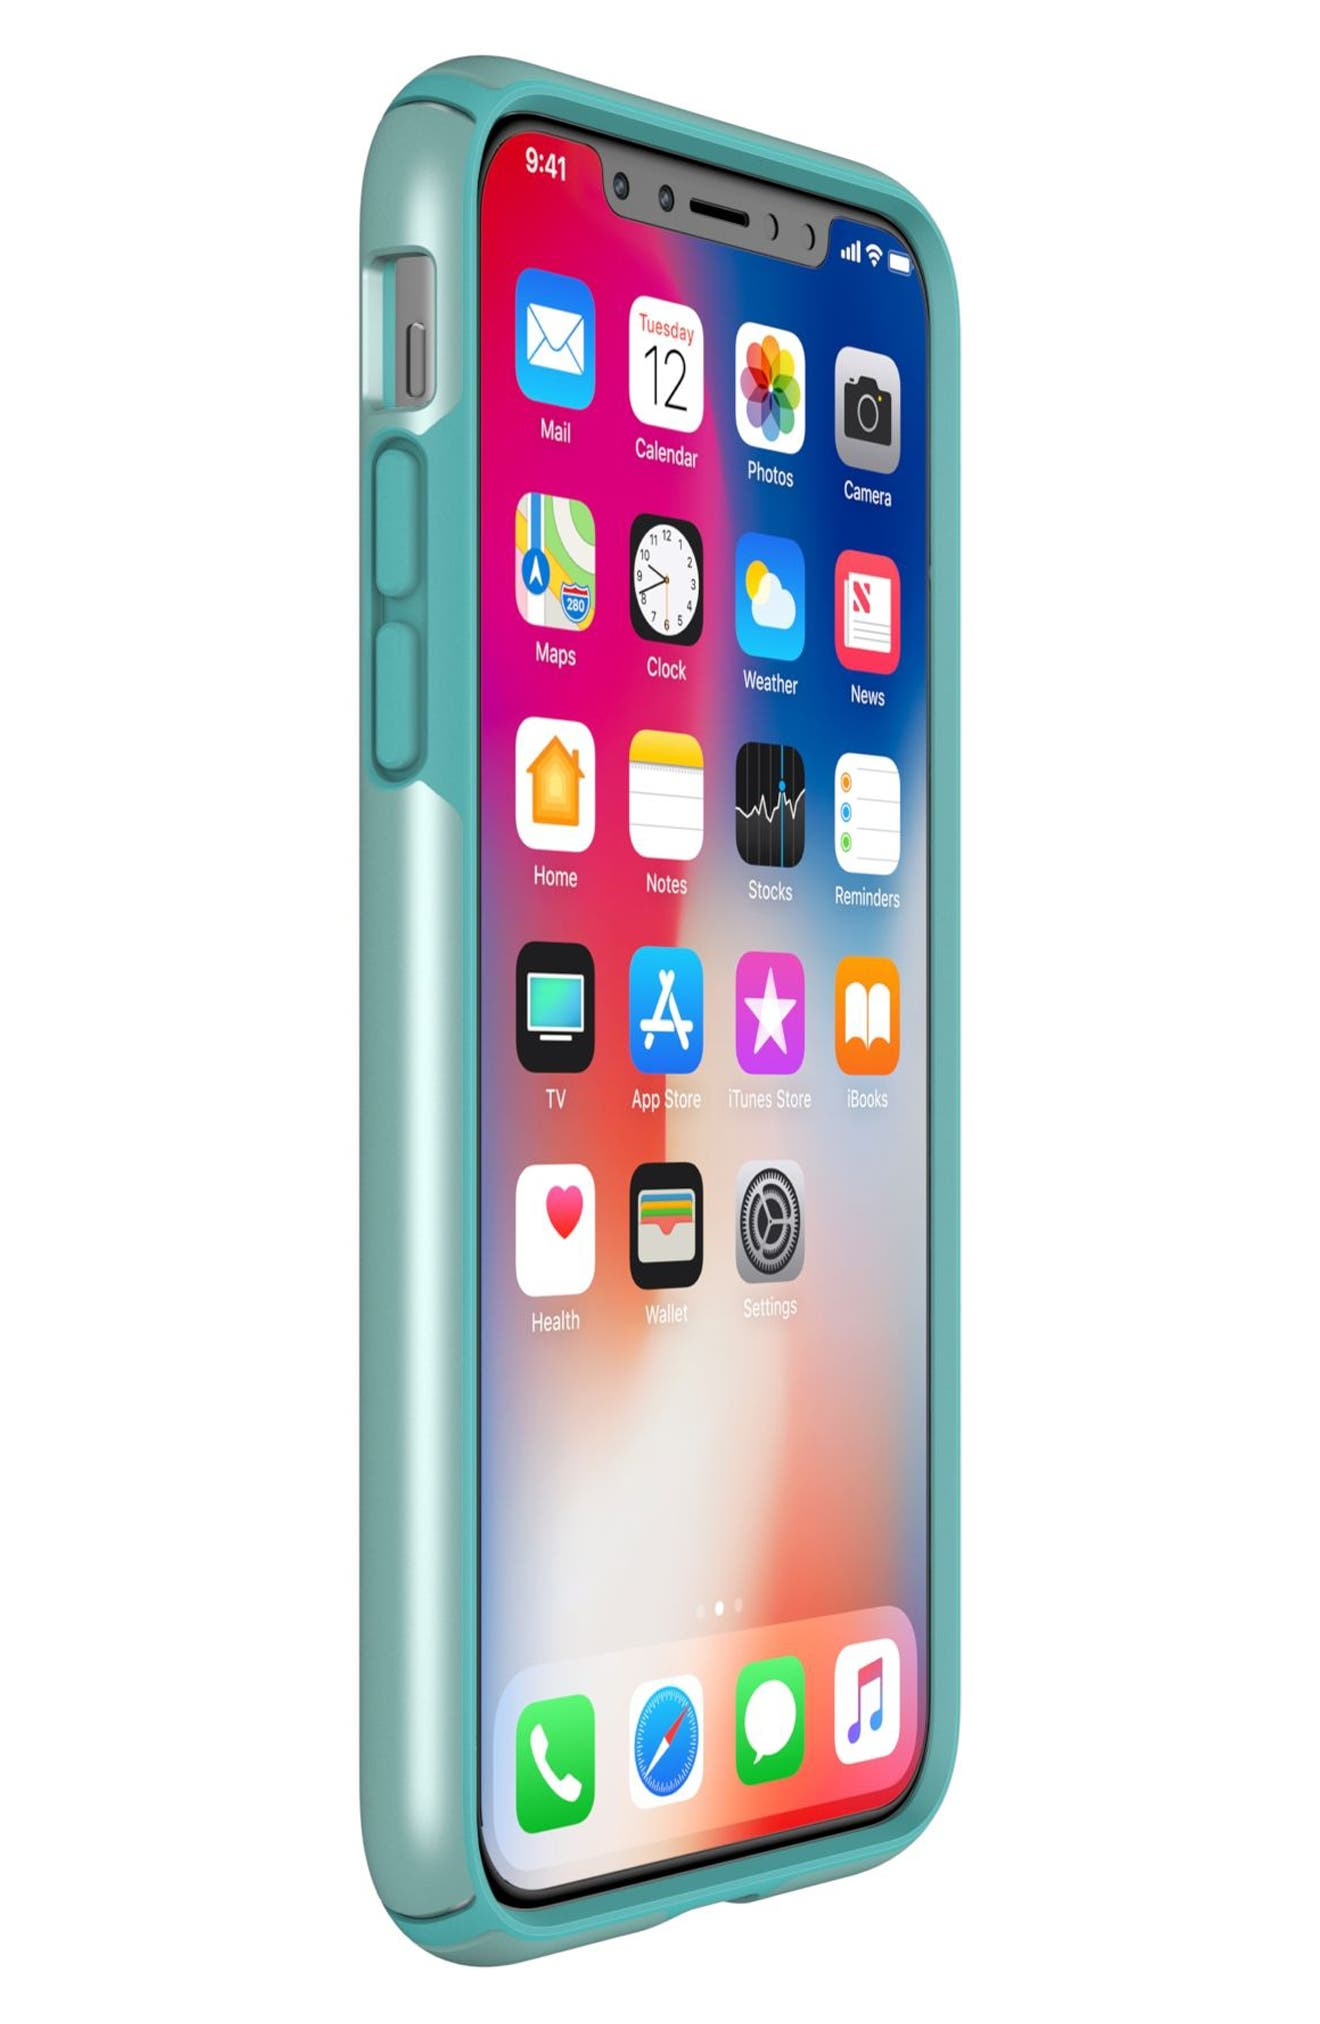 SPECK, iPhone X & Xs Case, Alternate thumbnail 7, color, PEPPERMINT GREEN / TEAL